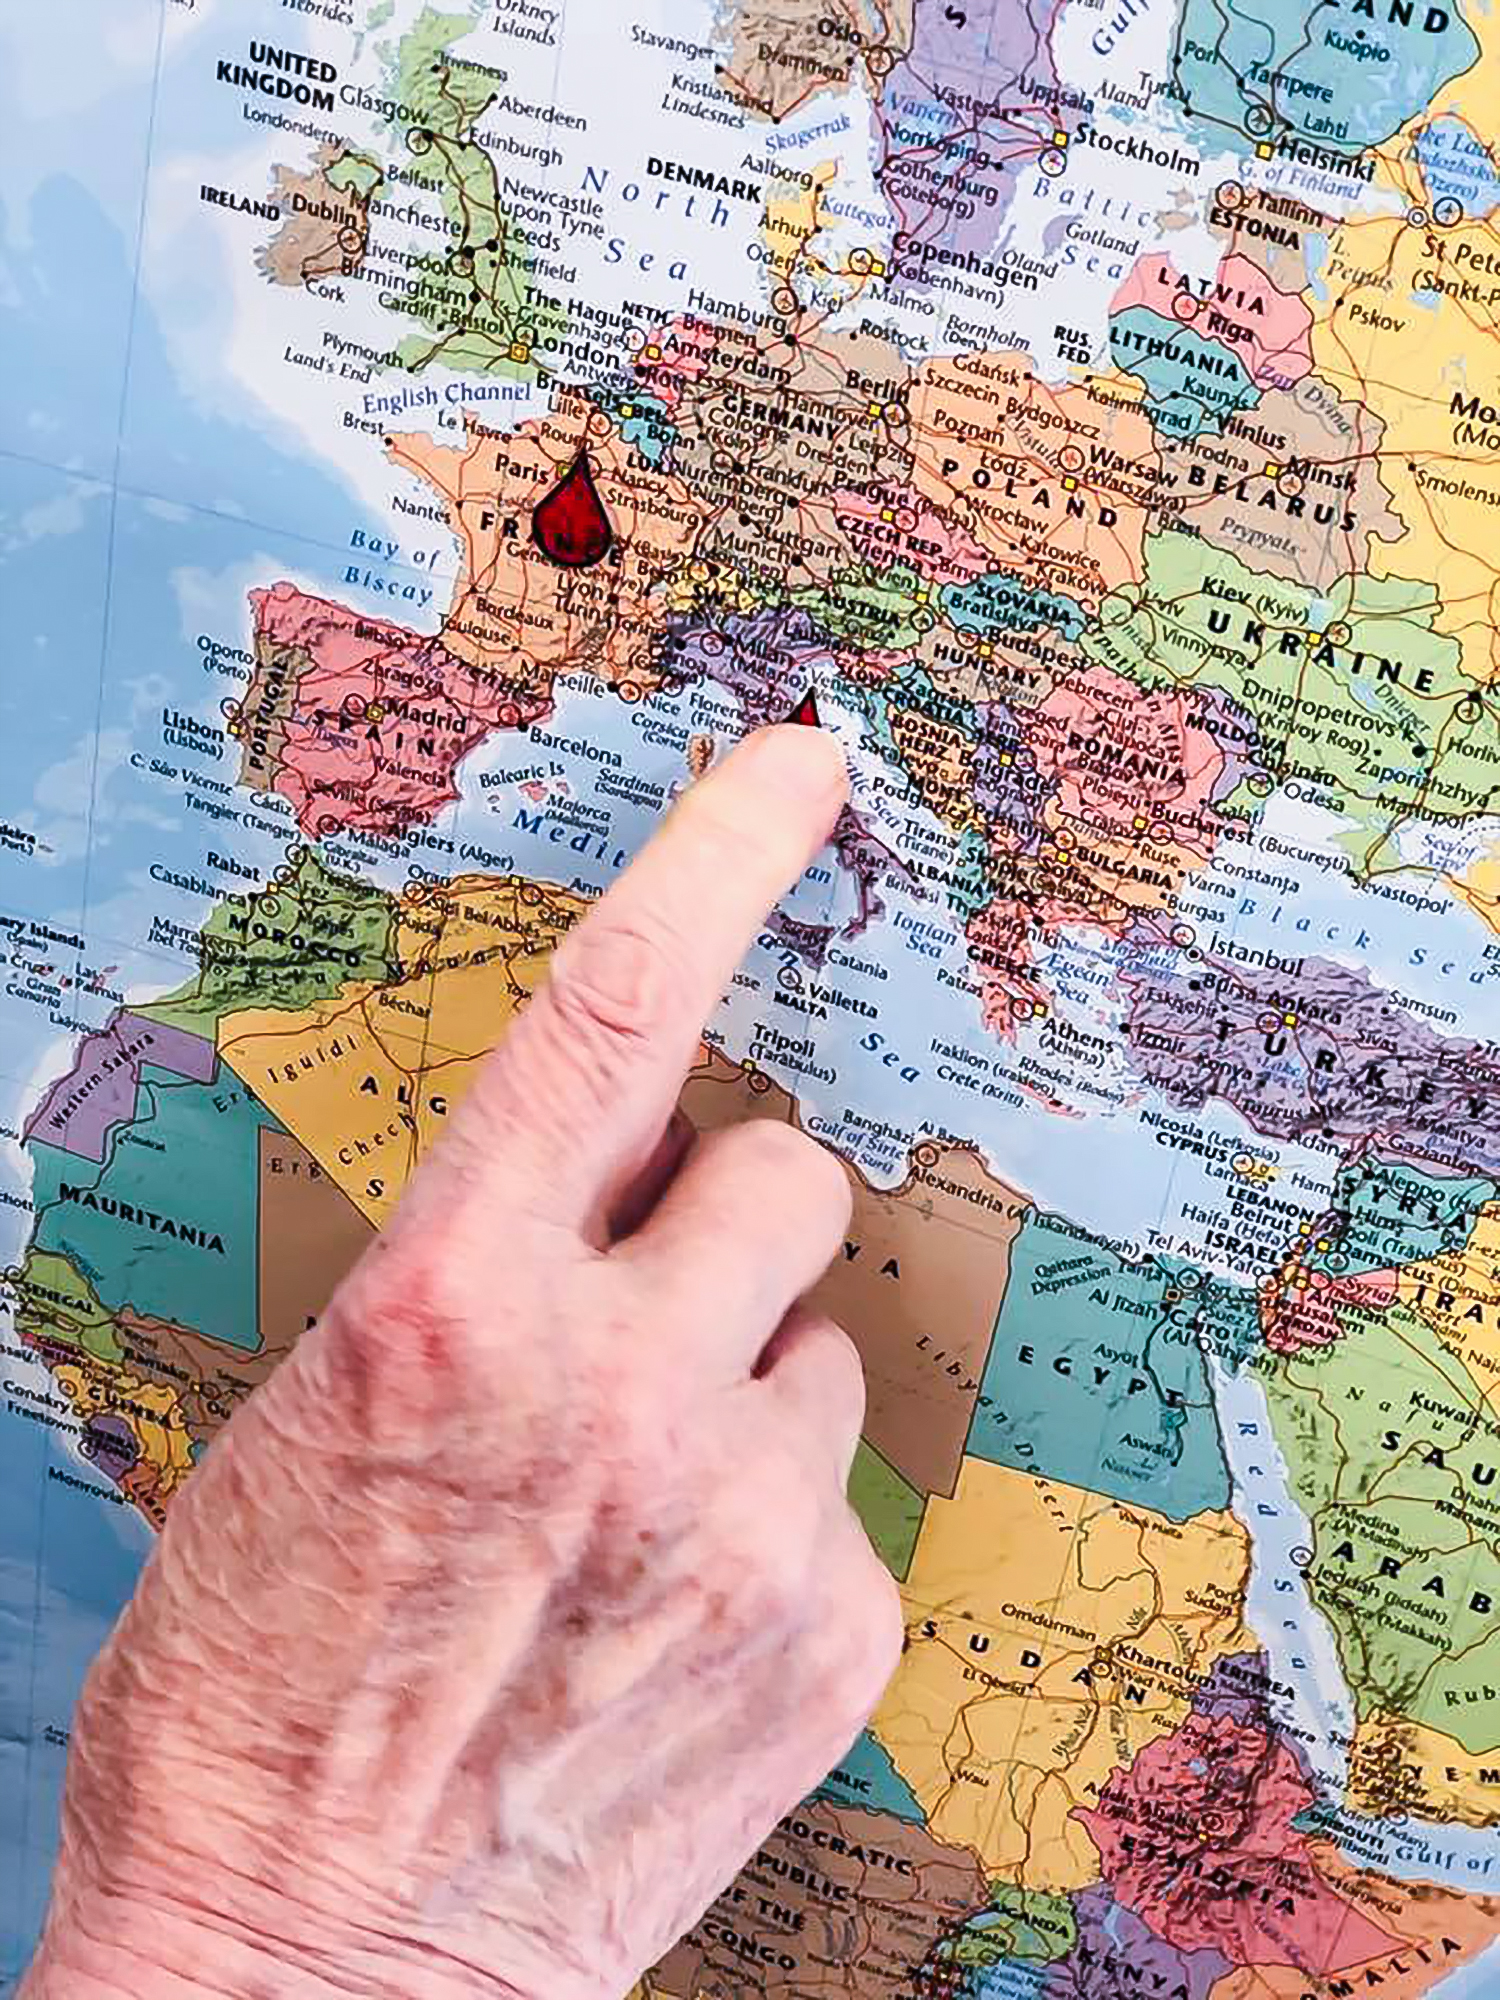 A resident's hand pointing to a world map